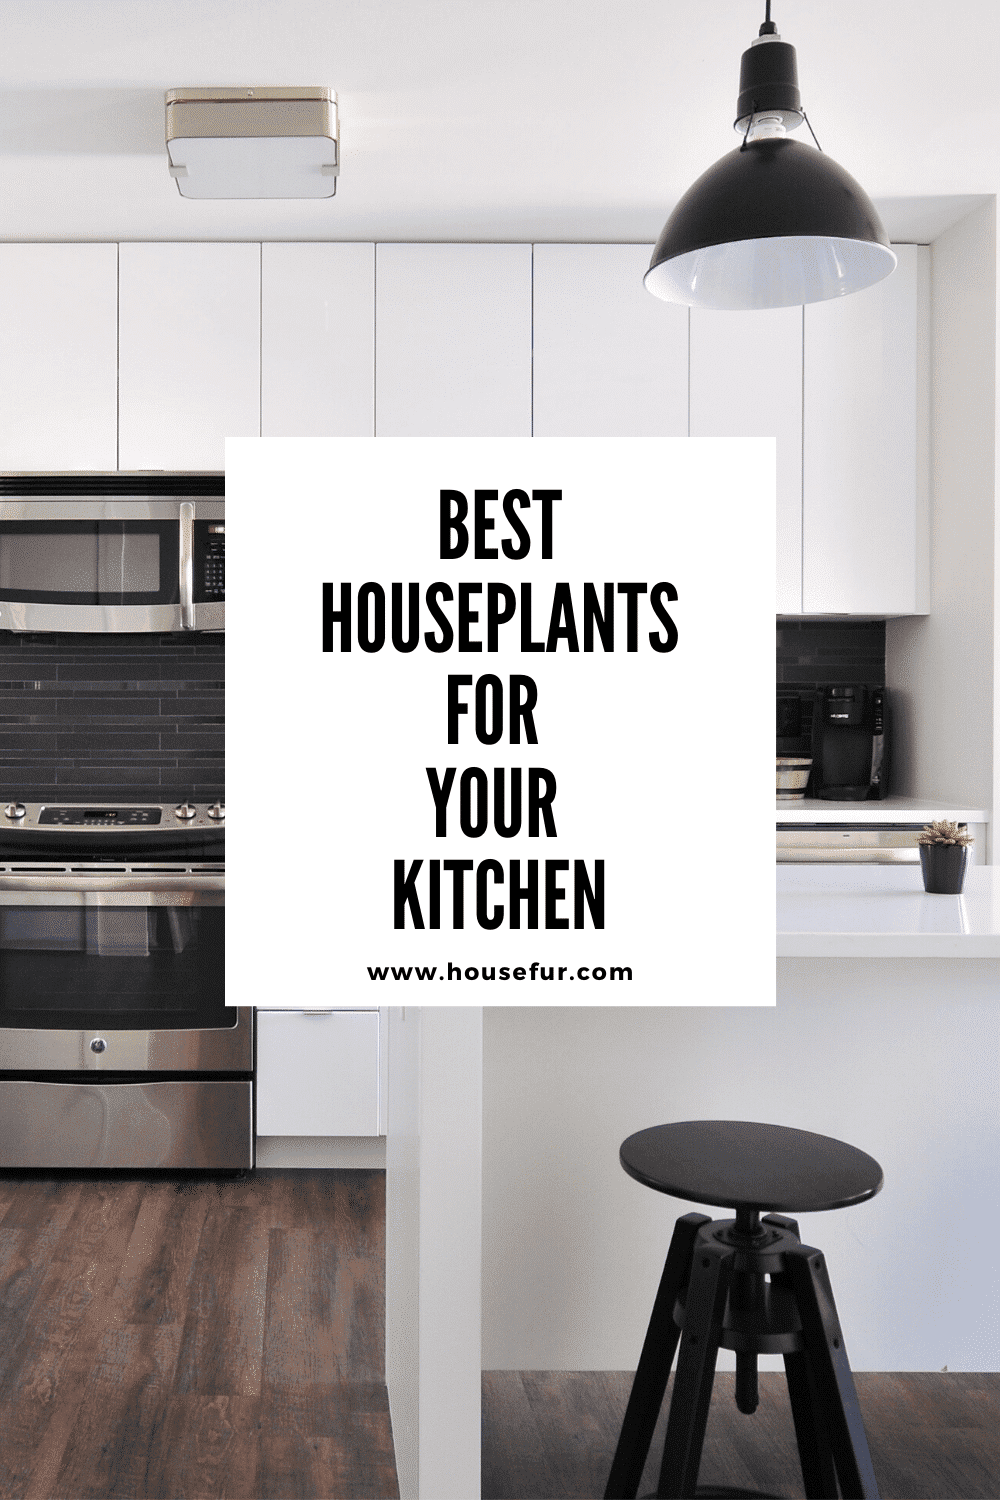 Best Houseplants for your kitchen